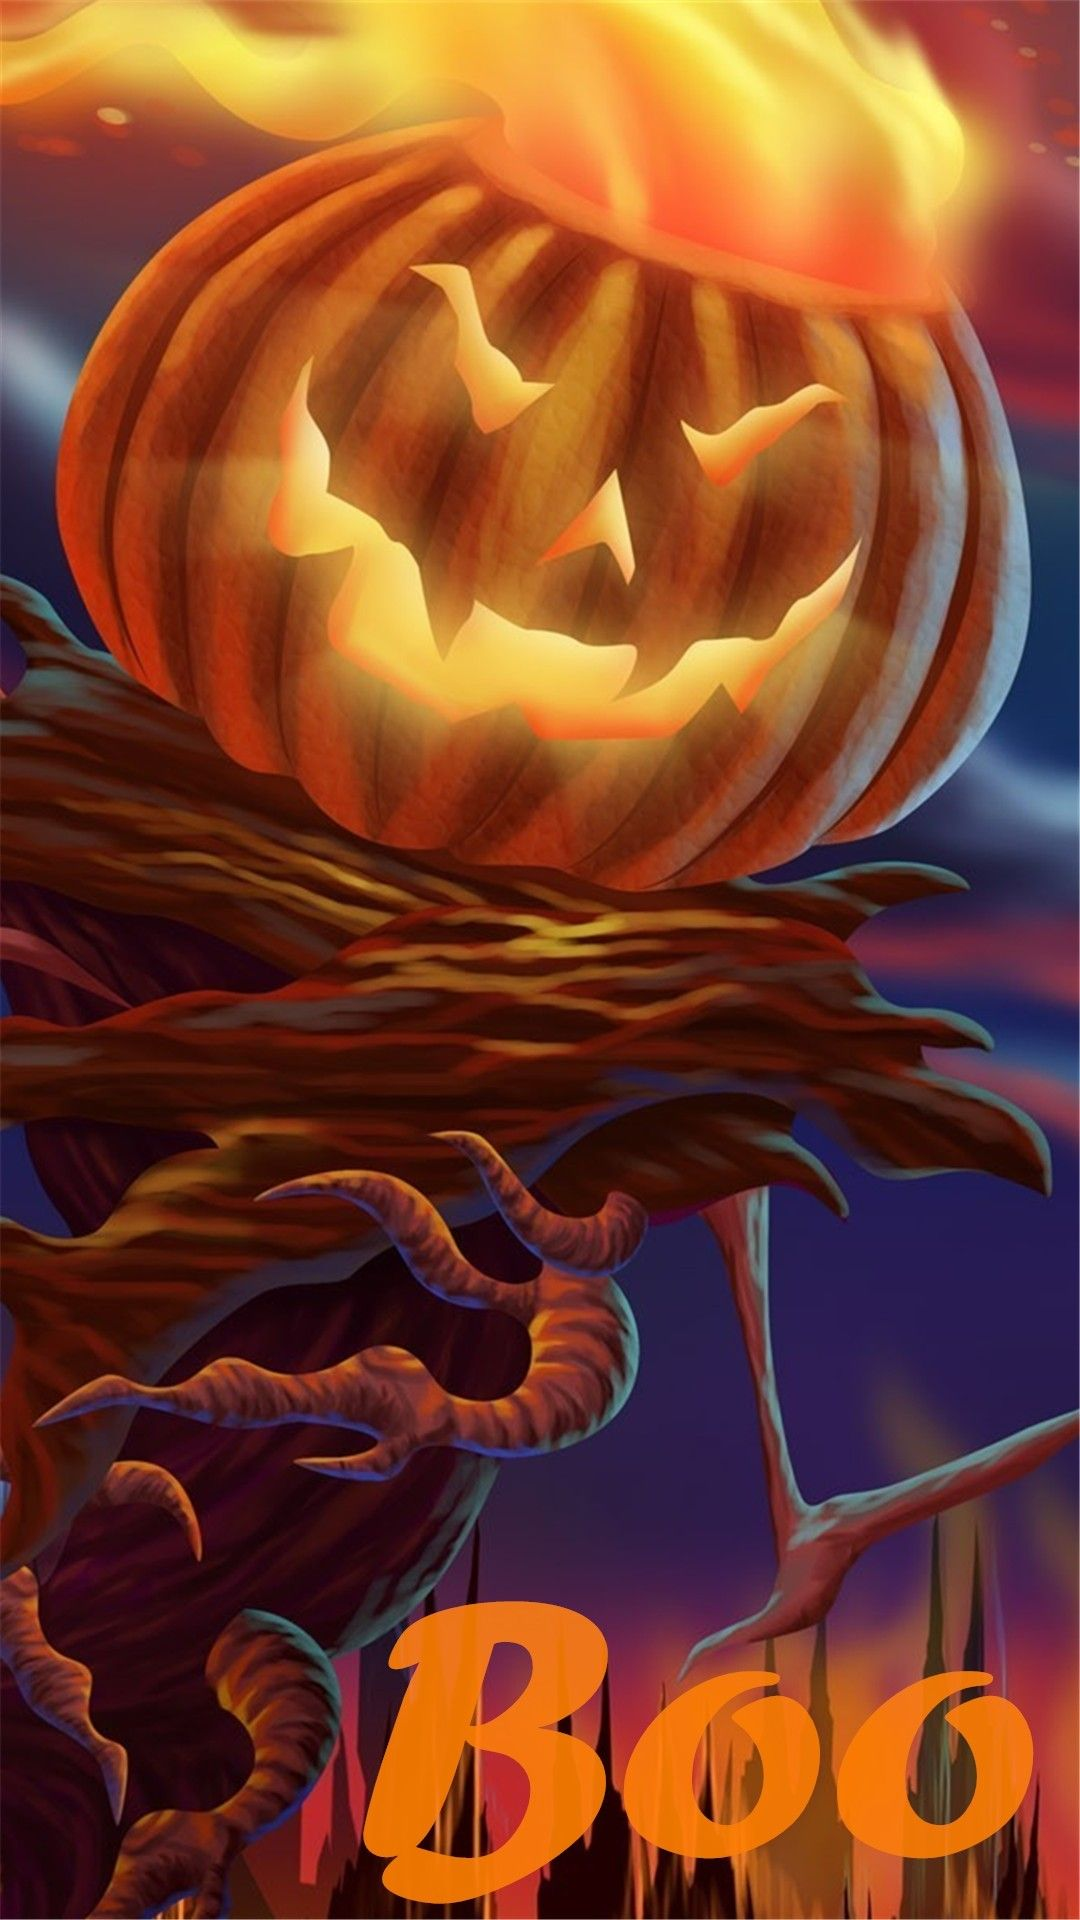 Popular Wallpaper Halloween Mobile Phone - 5a13ebfa3ad2e3eb4e7d4a94977bfcbb  Perfect Image Reference_458945.jpg